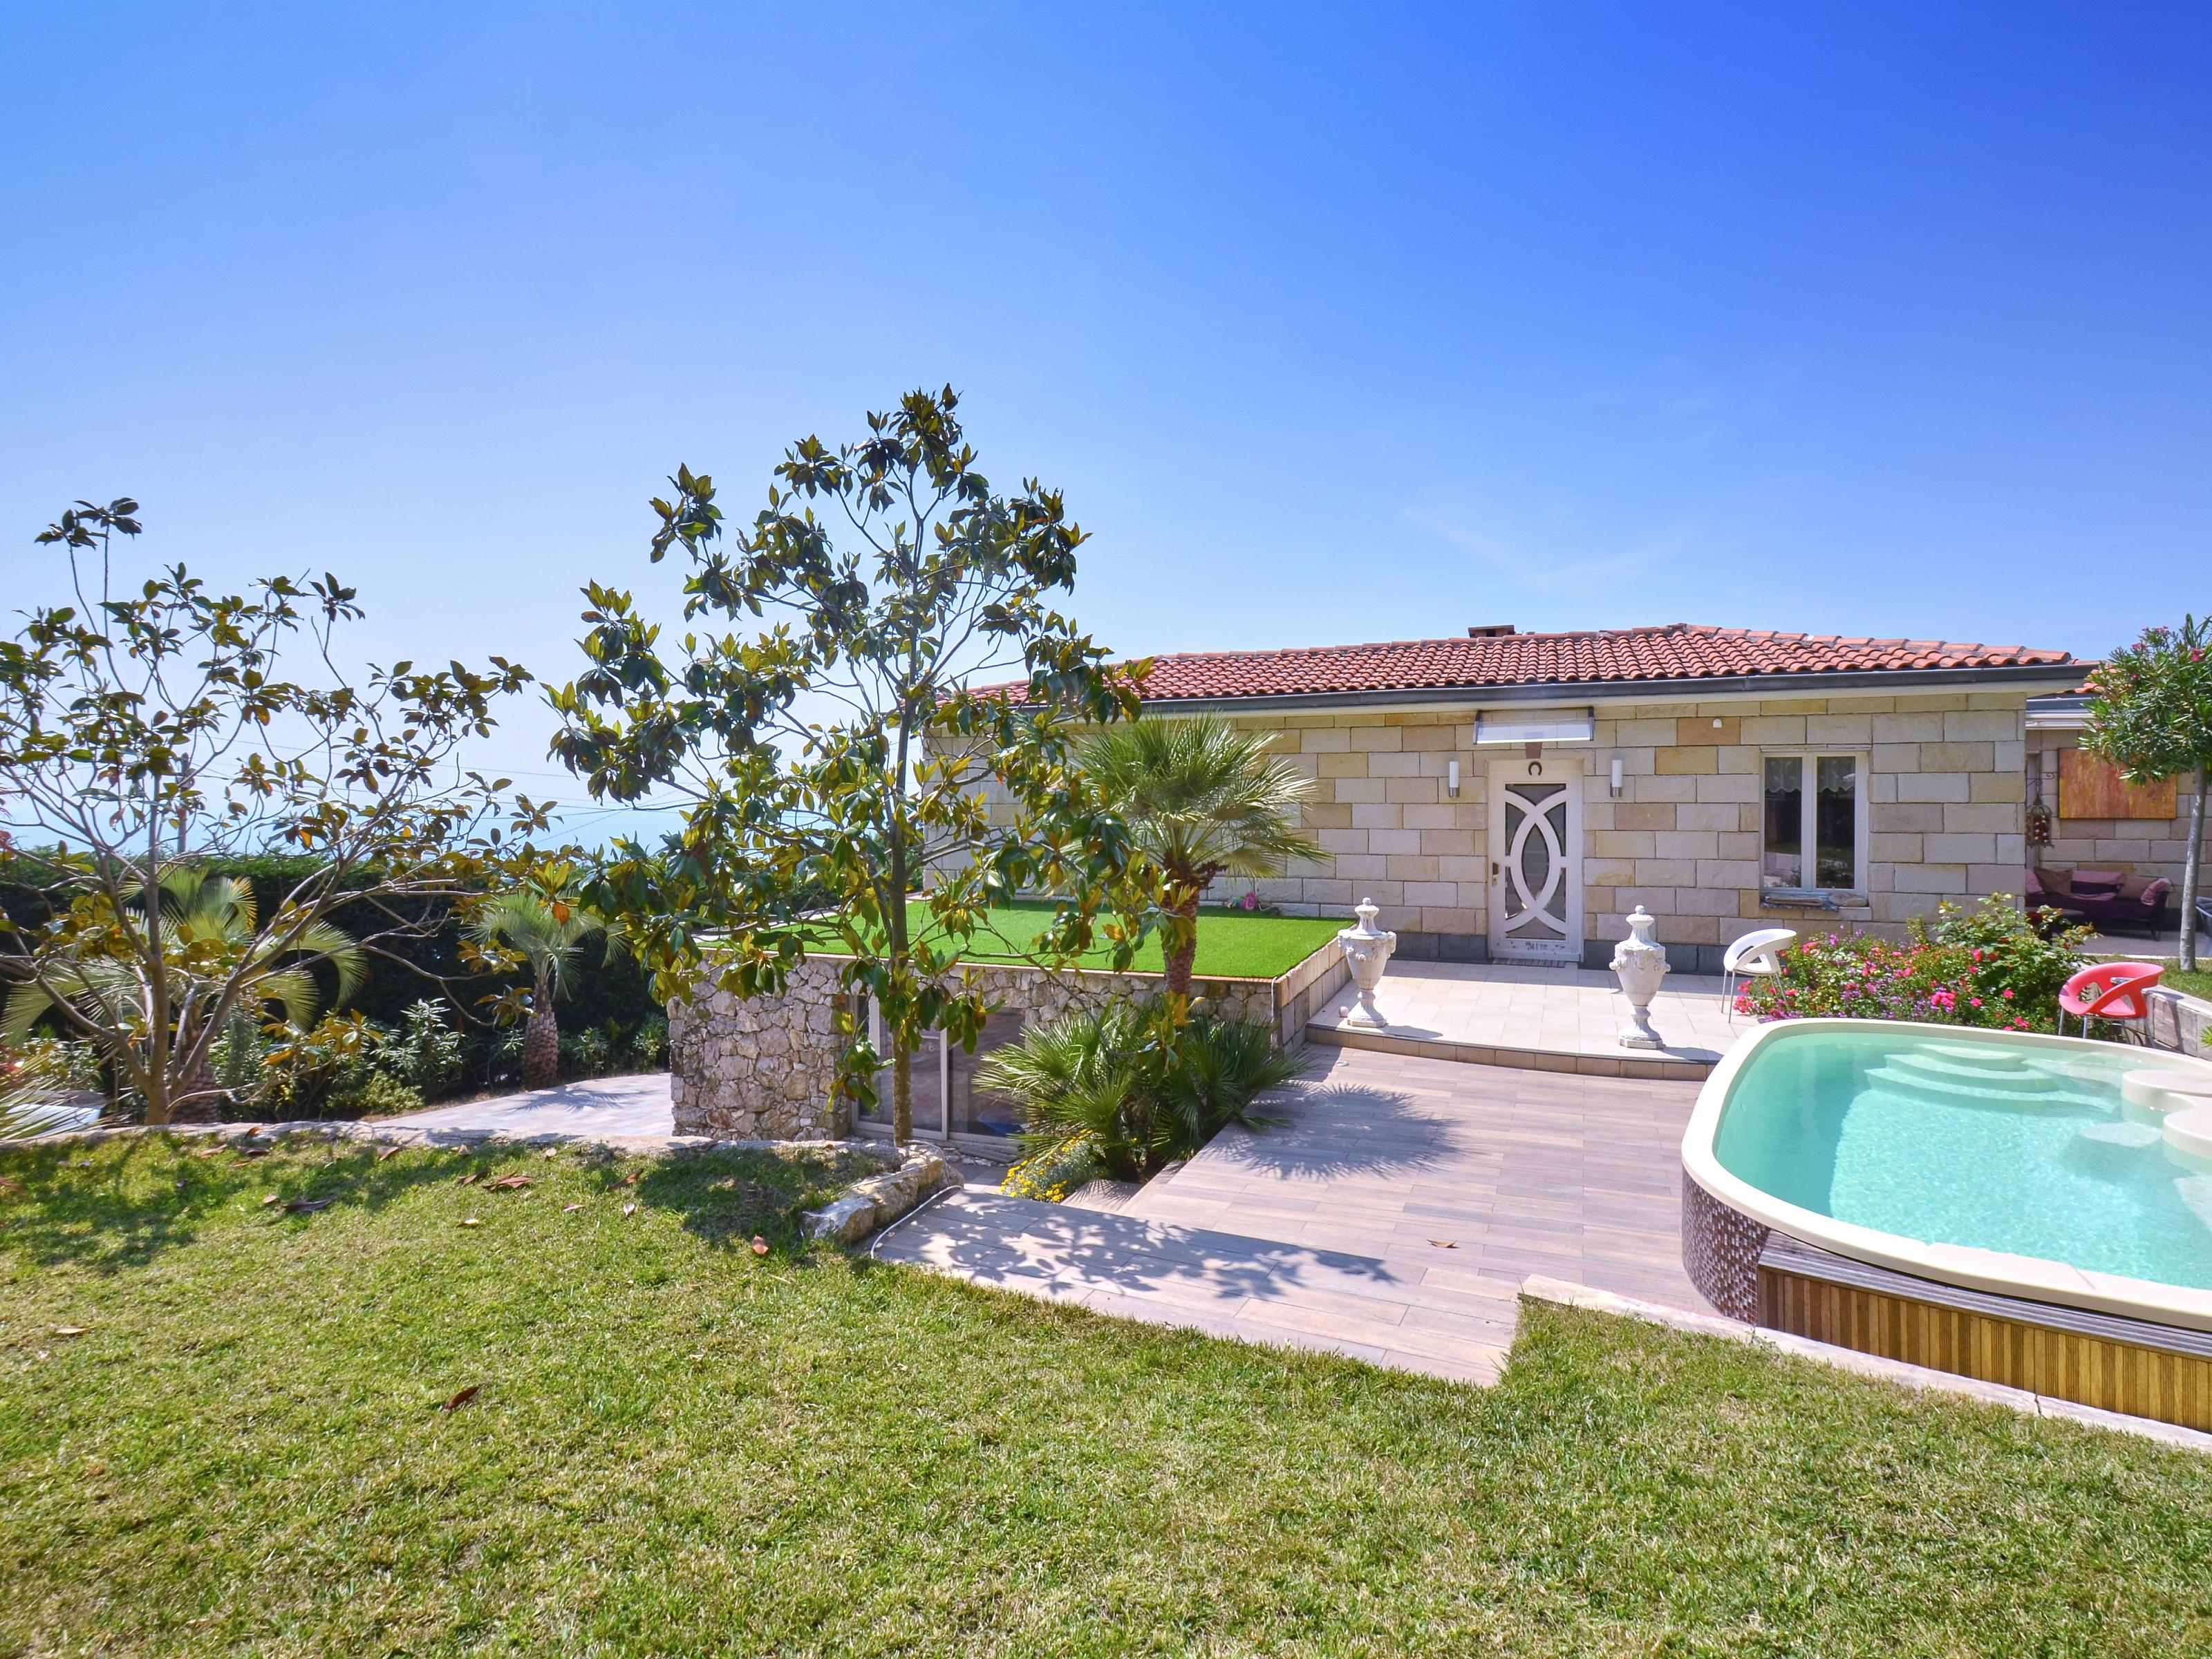 Maison unifamiliale pour l Vente à Villa with sea view and pool close to Monaco Eze sur Mer Other Provence-Alpes-Cote D'Azur, Provence-Alpes-Cote D'Azur 06360 France